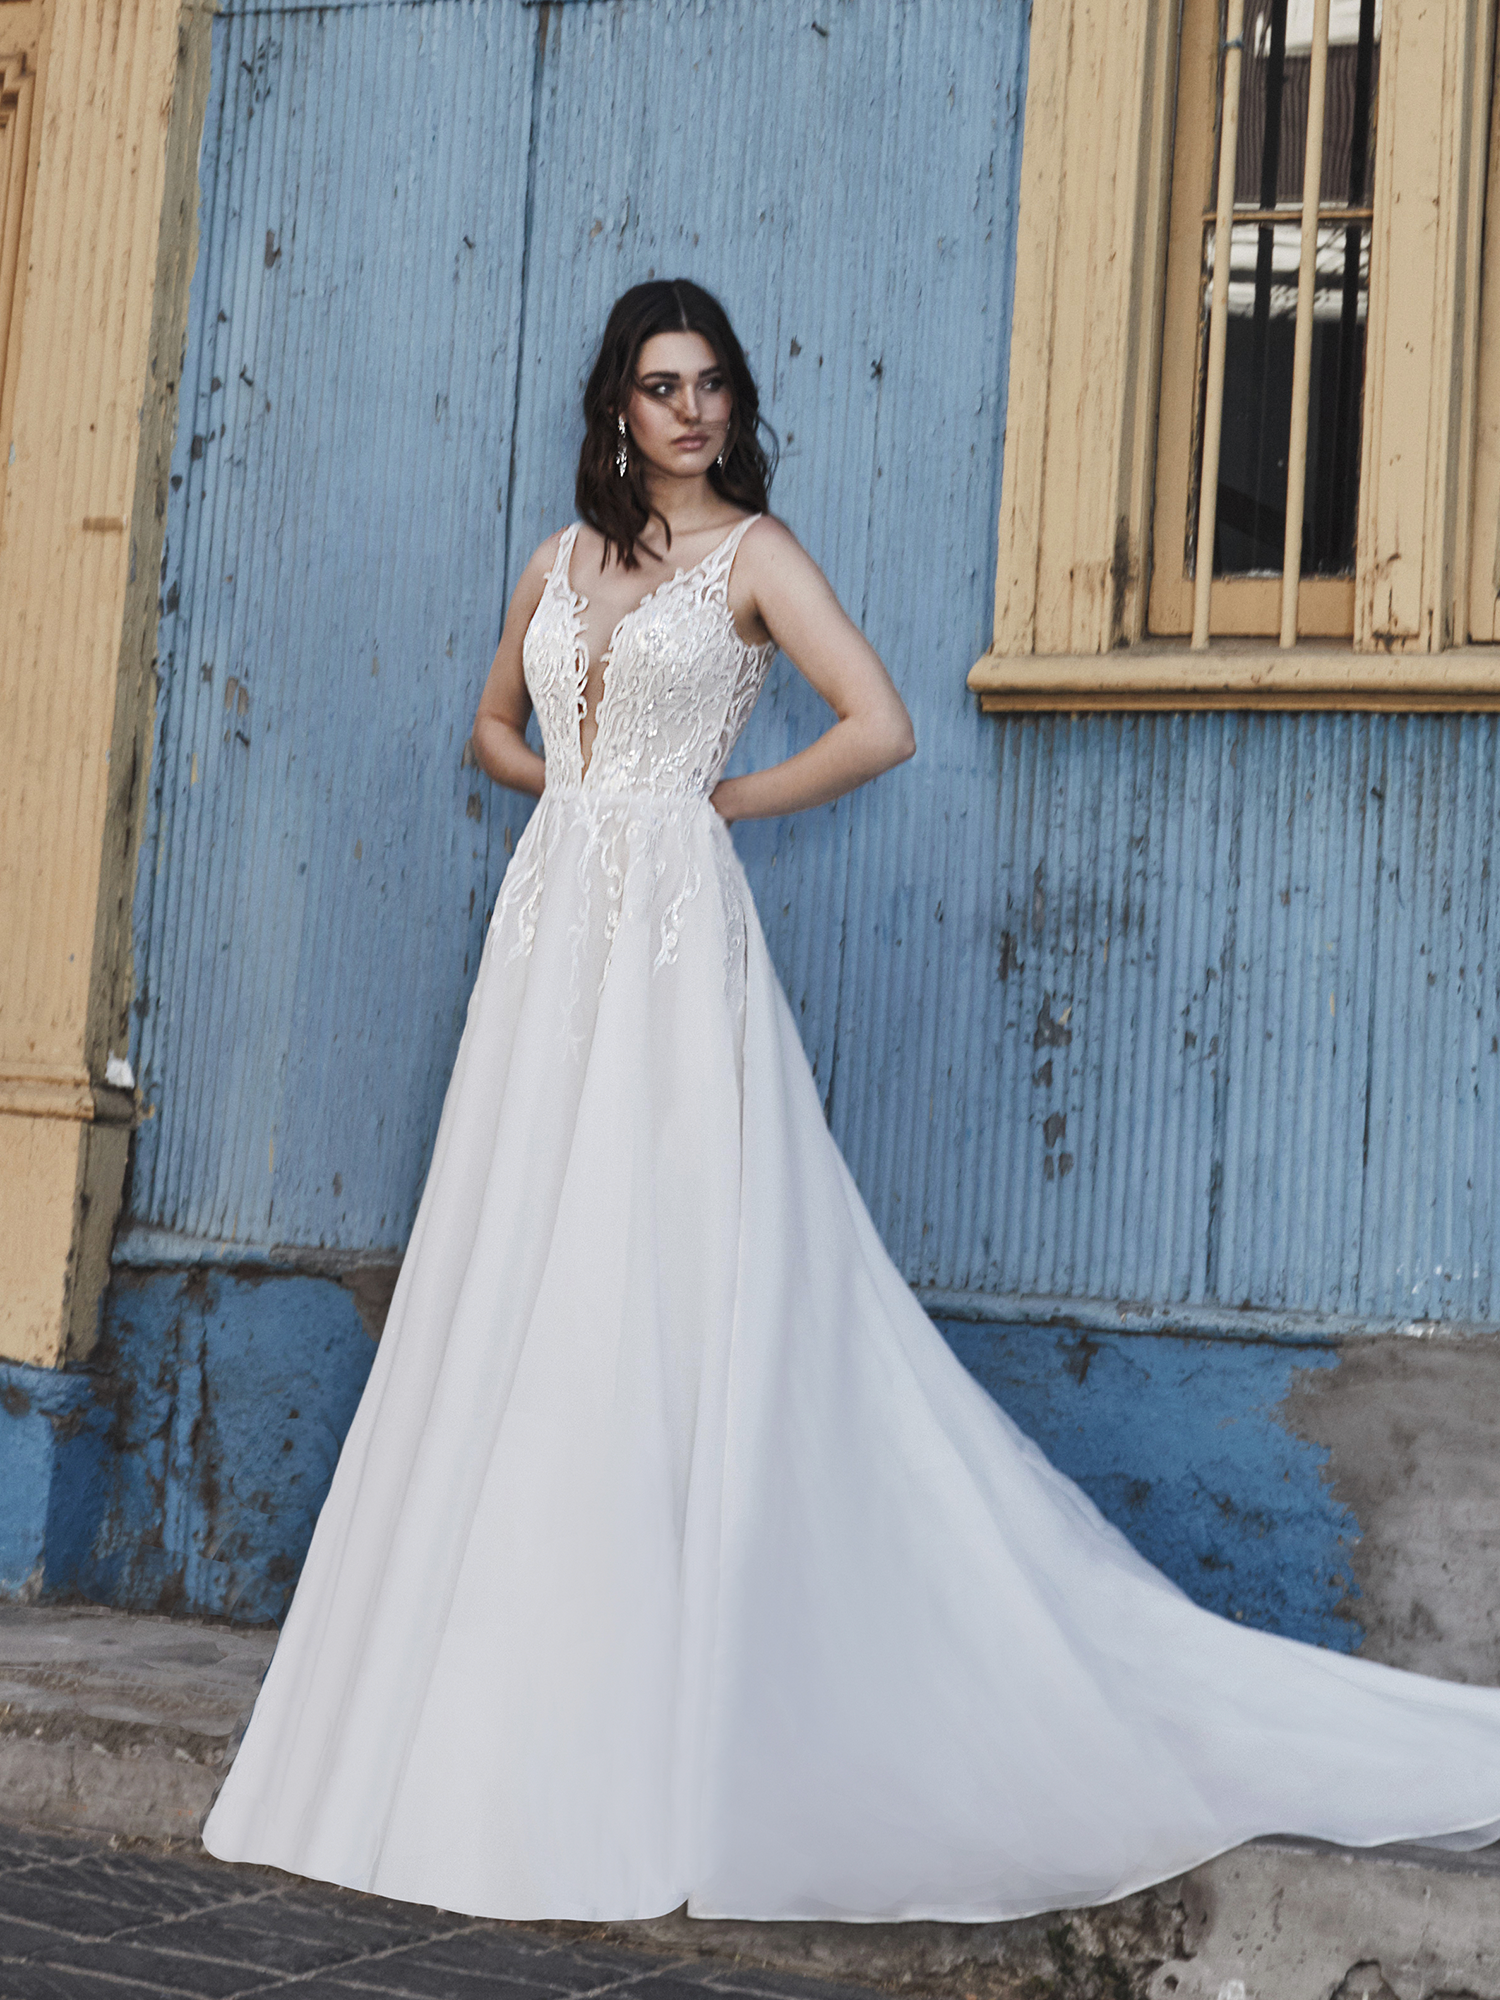 L Amour By Calla Blanche Divina La9249 Ivory Ivory Sz 12 1298 Now 399 Available At In 2020 Wedding Dress Styles Beautiful Wedding Dresses Free Wedding Dress